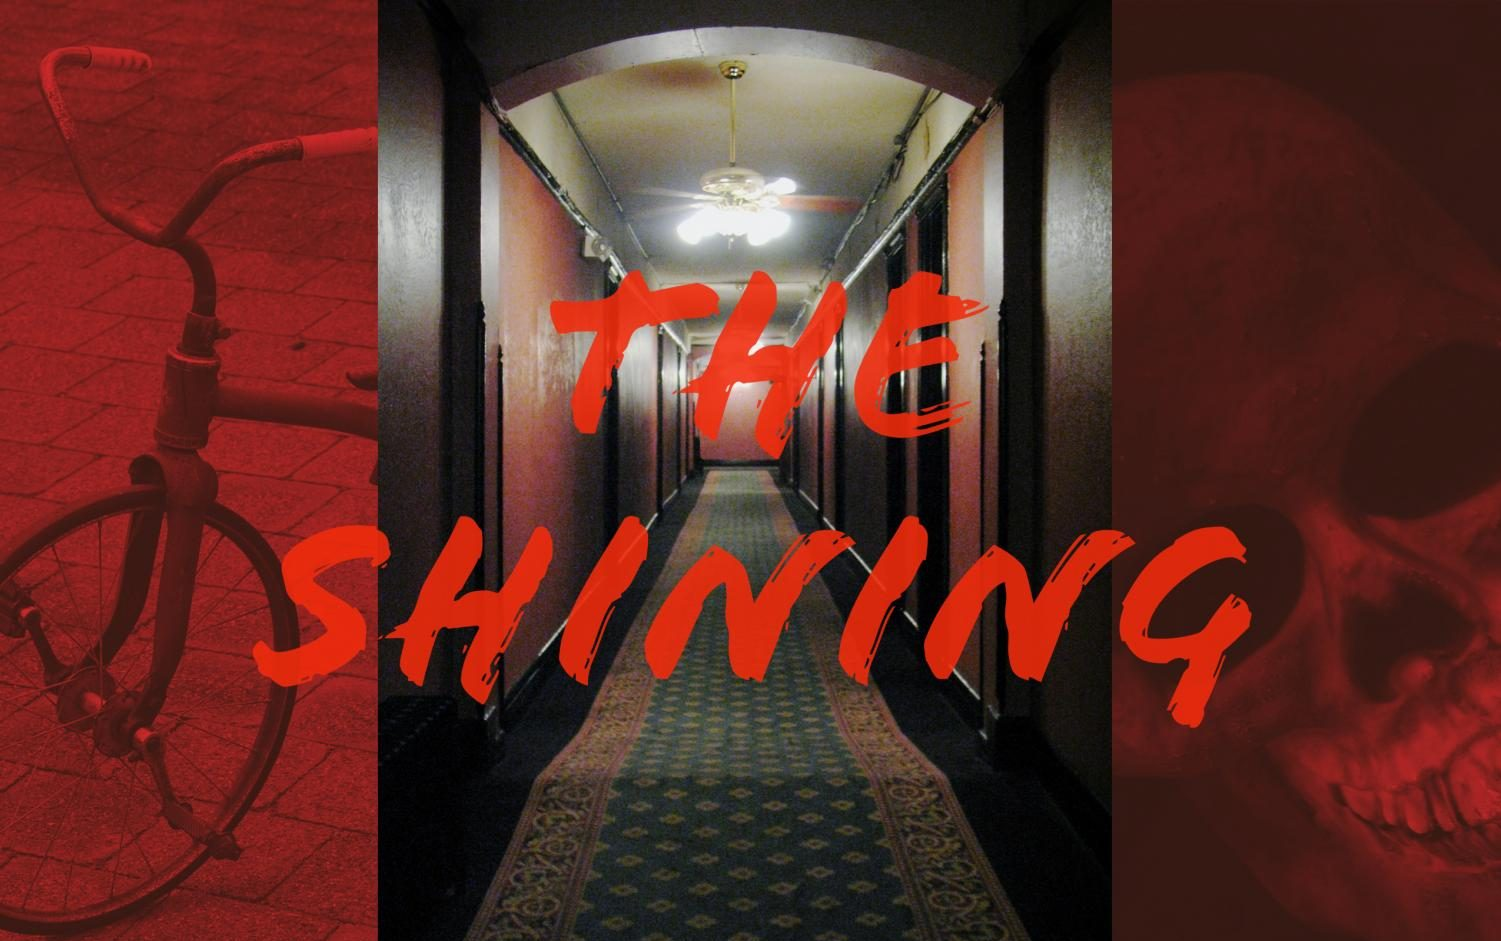 The Shining (1980), starring Jack Nicholson, is a classic horror film.